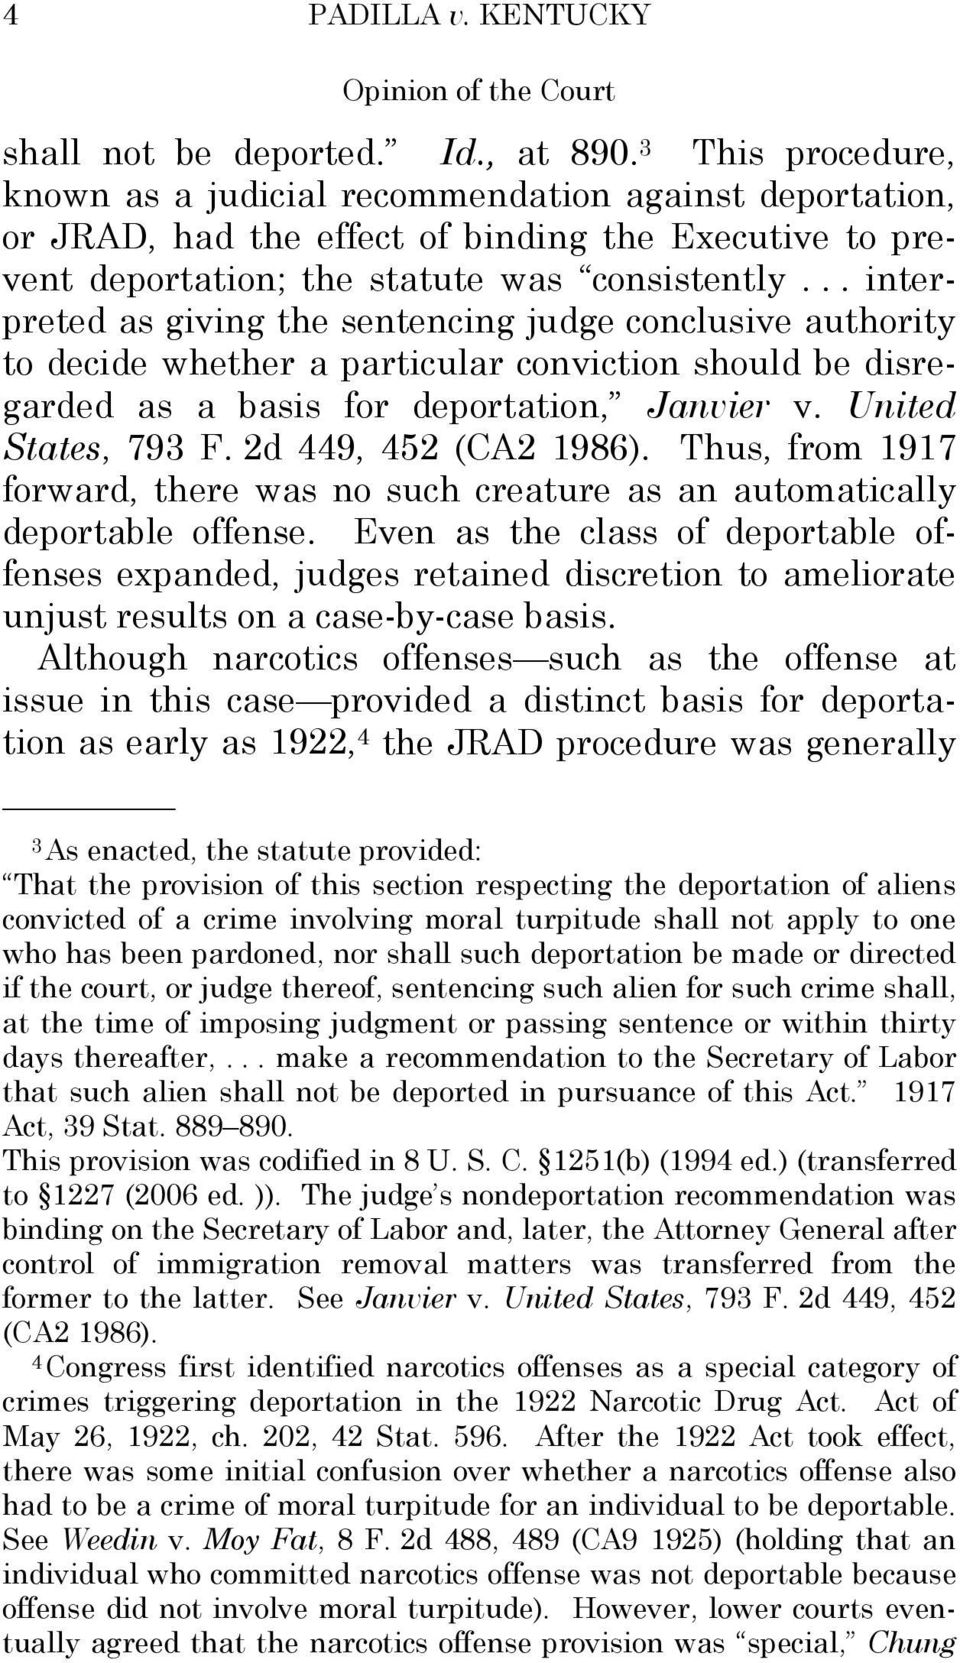 .. interpreted as giving the sentencing judge conclusive authority to decide whether a particular conviction should be disregarded as a basis for deportation, Janvier v. United States, 793 F.